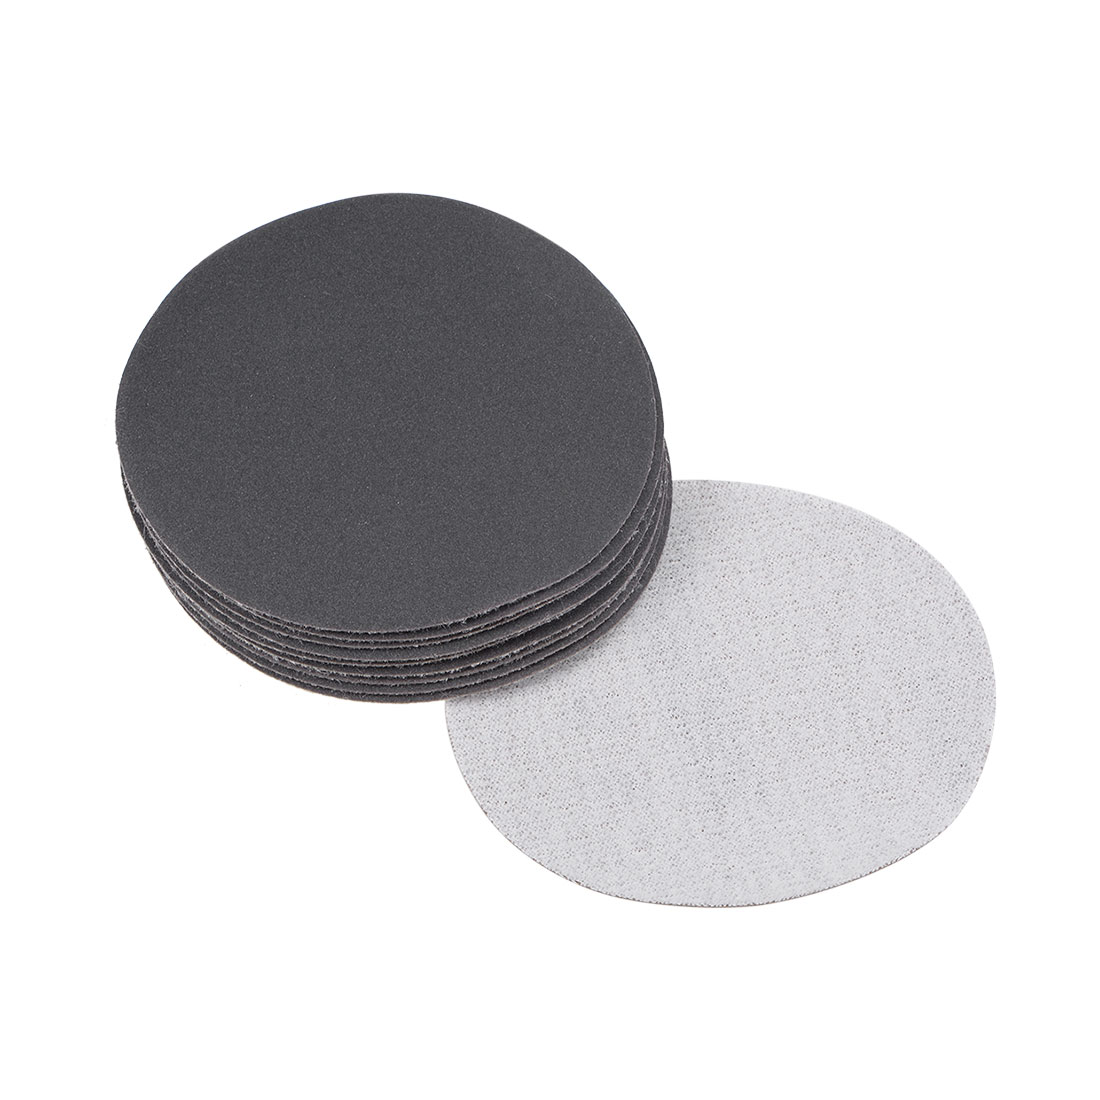 3 inch Wet Dry Discs 400 Grit Hook and Loop Sanding Disc Silicon Carbide 10pcs